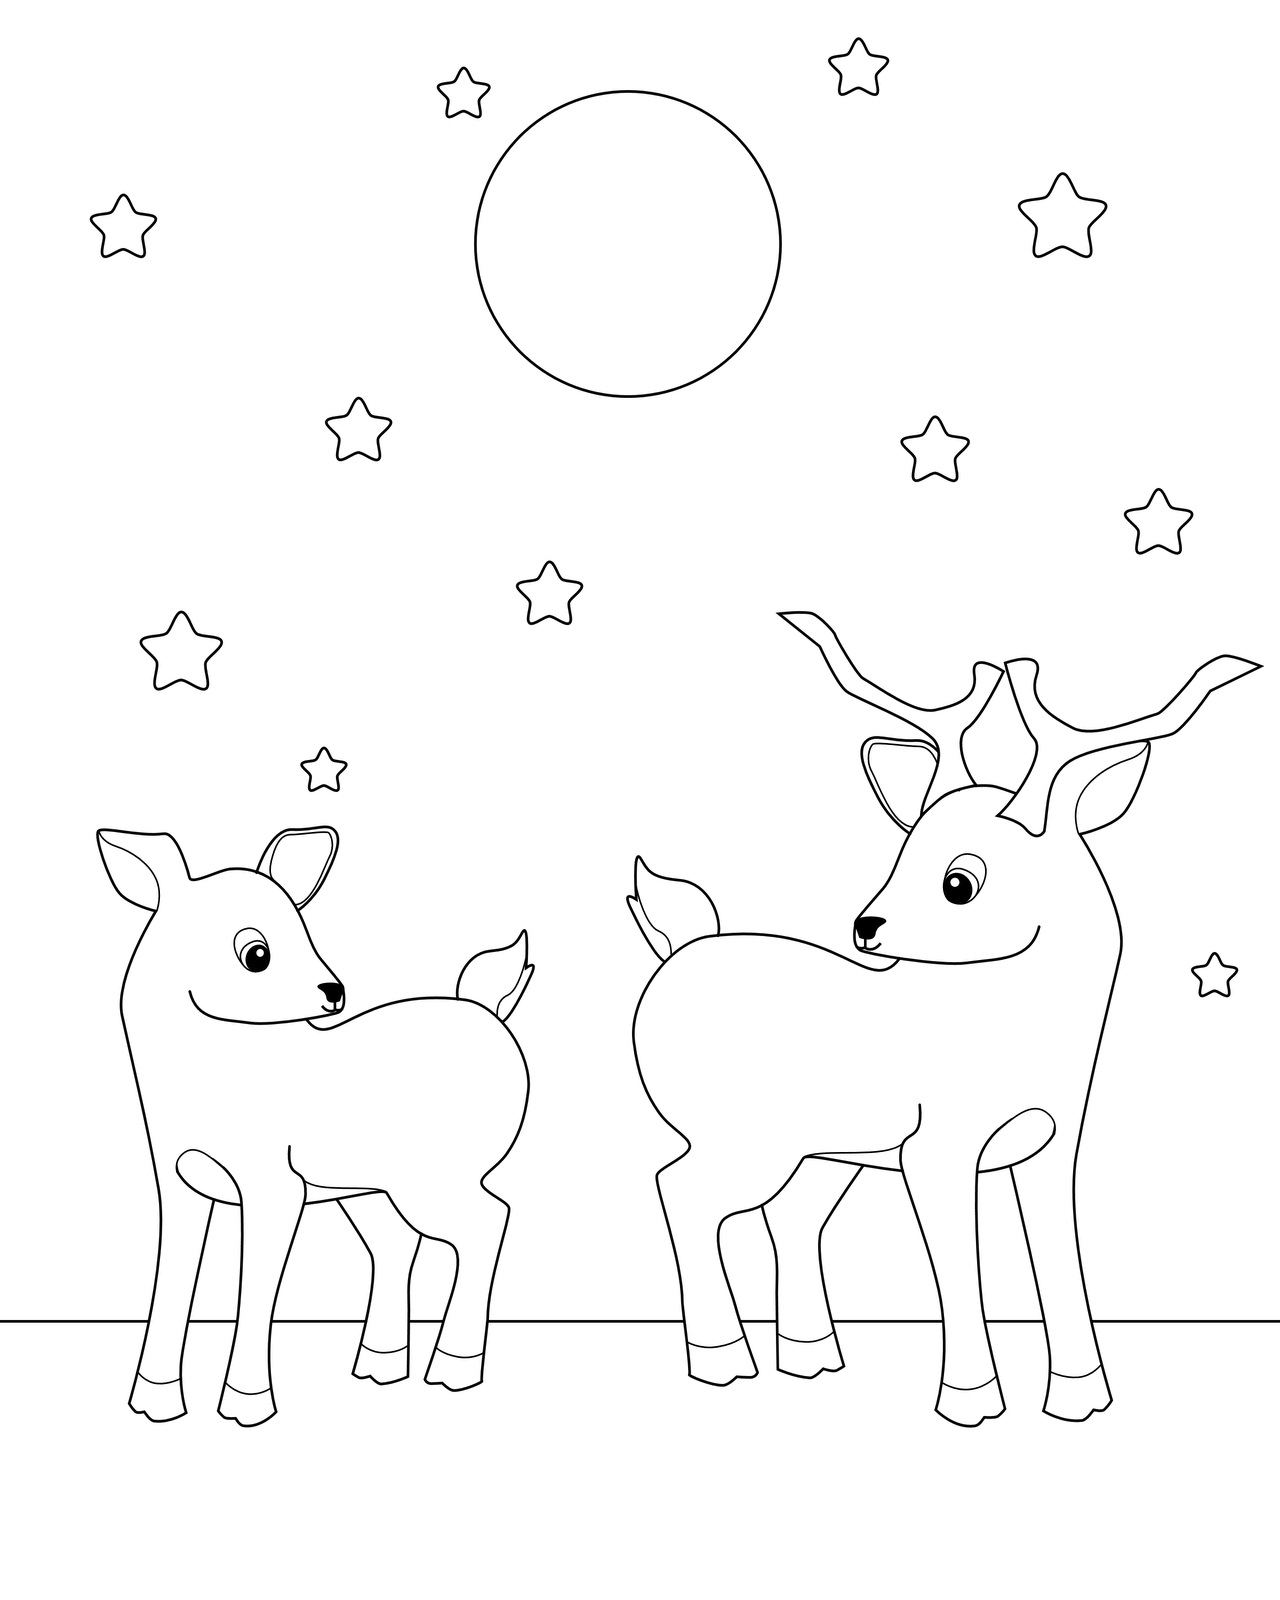 Coloring pages deer - Baby Deer Coloring Page Free Printable Deer Coloring Pages For Kids Animal Place On Coloring Pictures